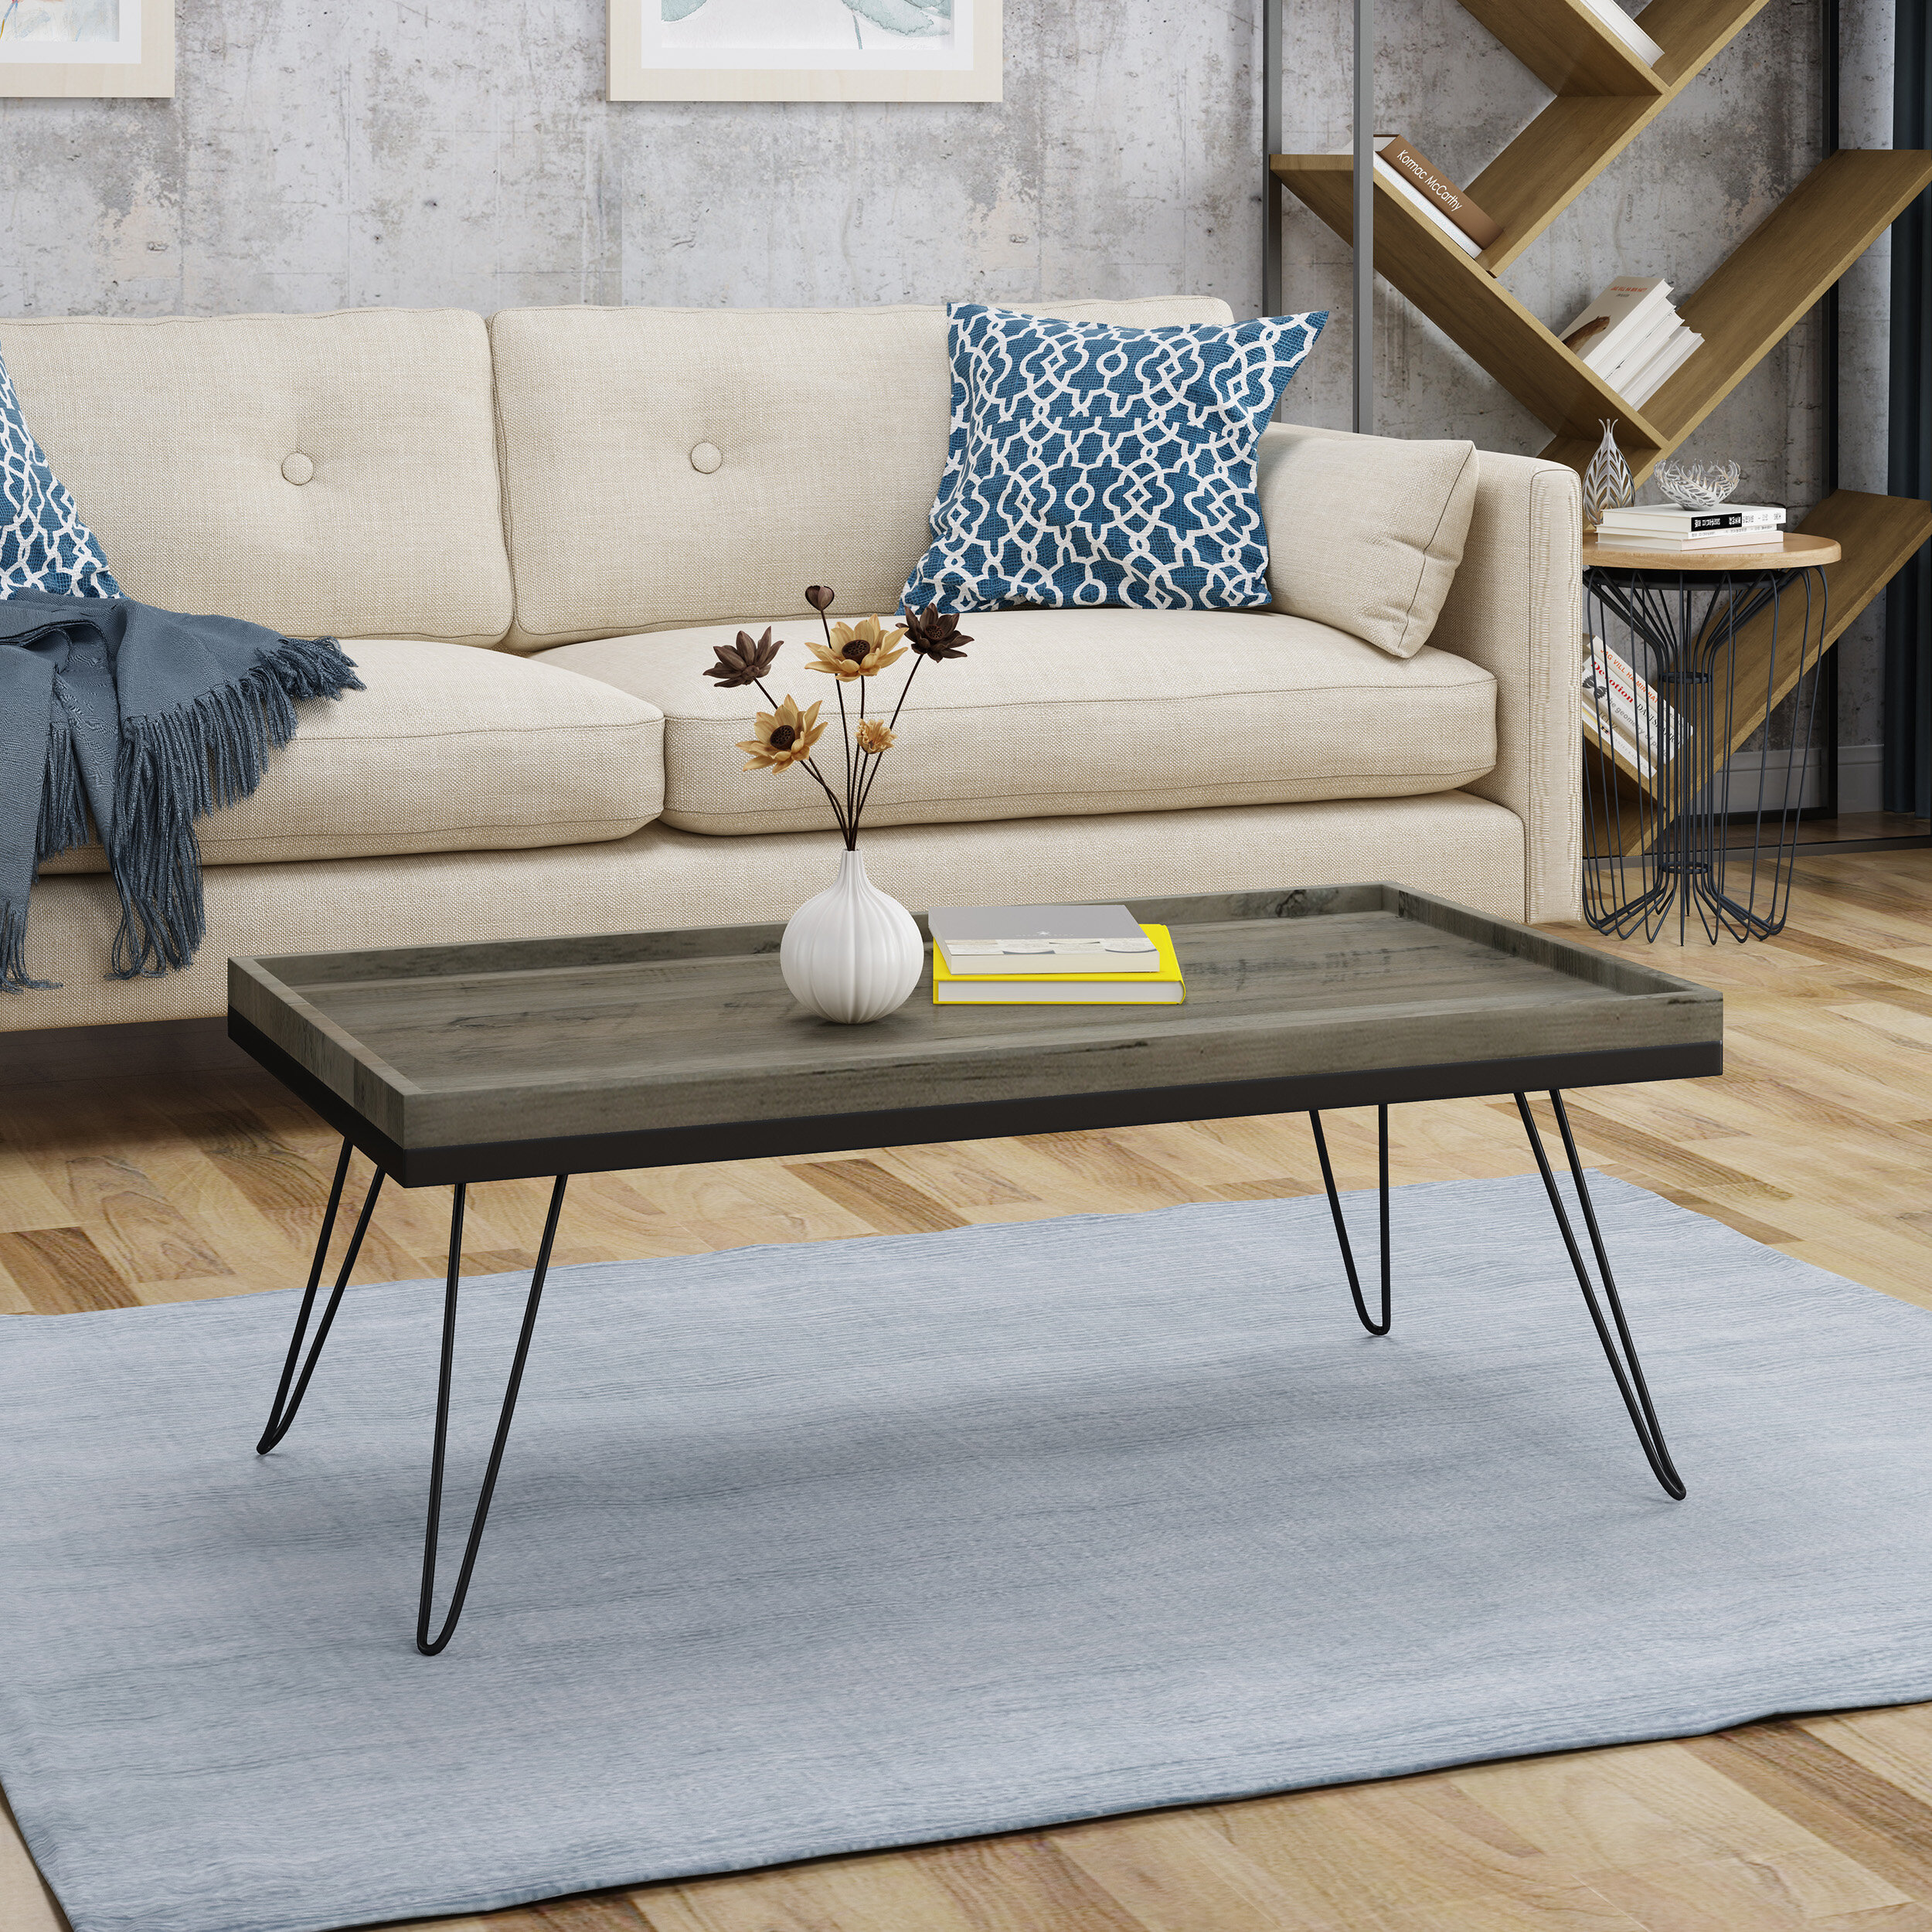 Phenomenal Gaston Industrial Modern Coffee Table With Tray Top Gamerscity Chair Design For Home Gamerscityorg